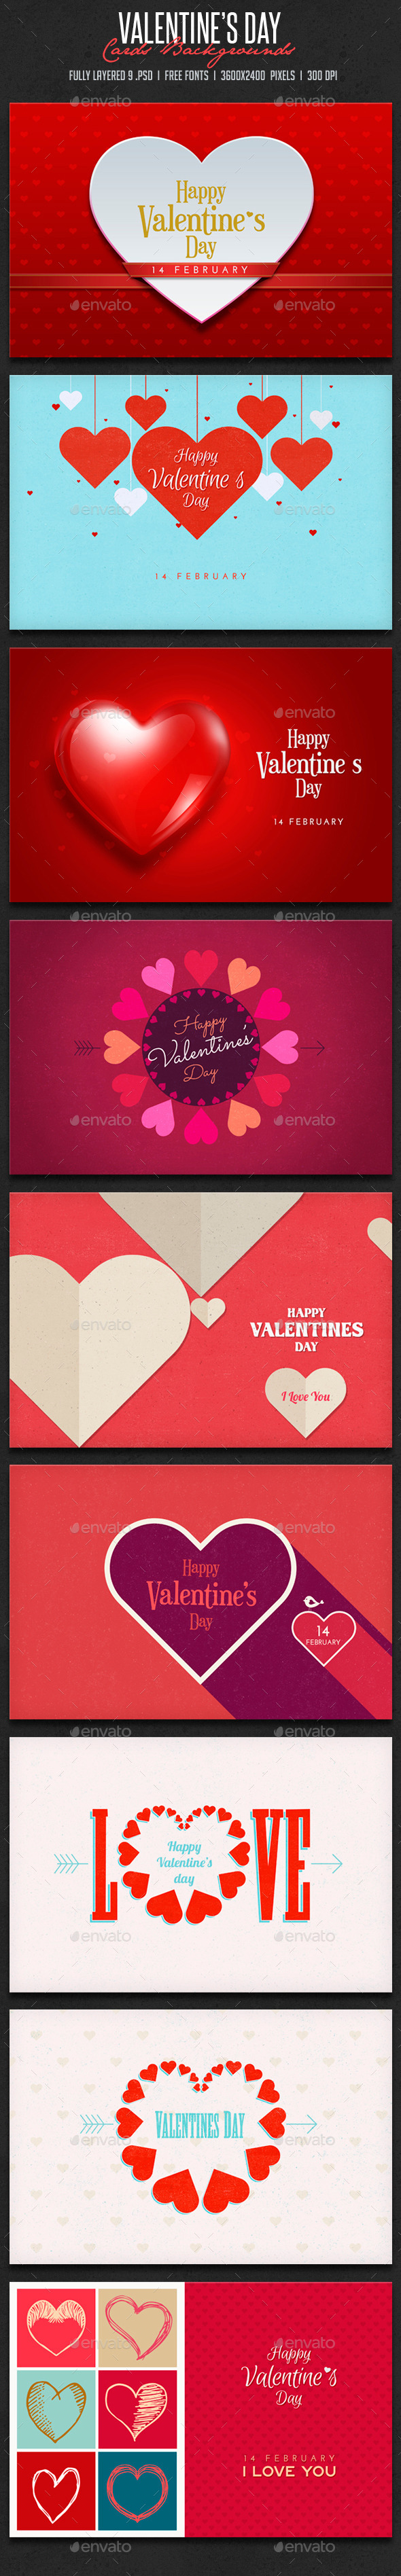 Valentine's Day CardsBackgrounds - Miscellaneous Backgrounds